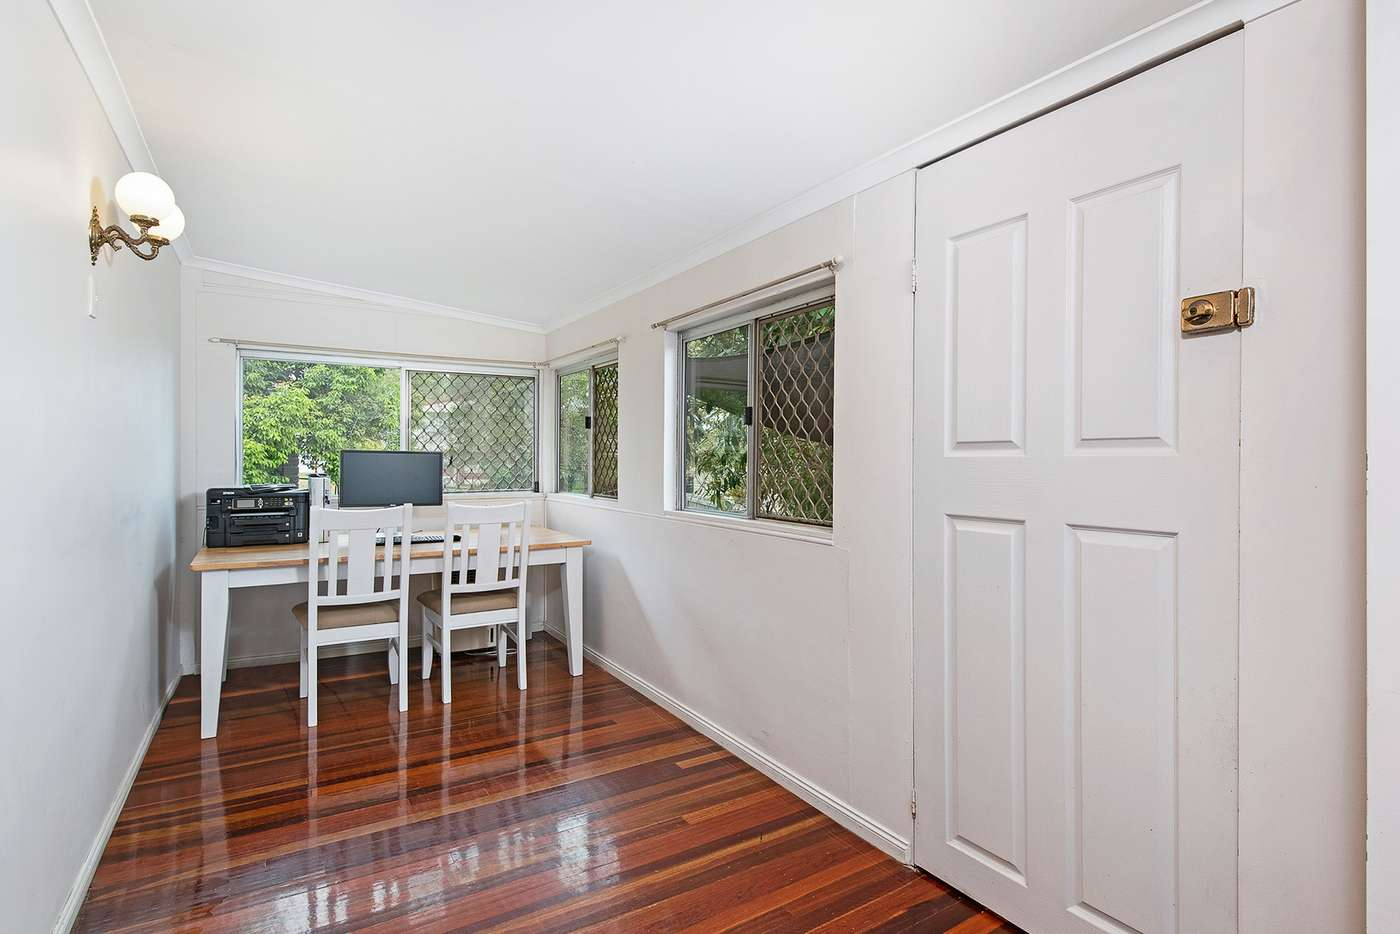 Sixth view of Homely house listing, 54 Moolabar Street, Morningside QLD 4170